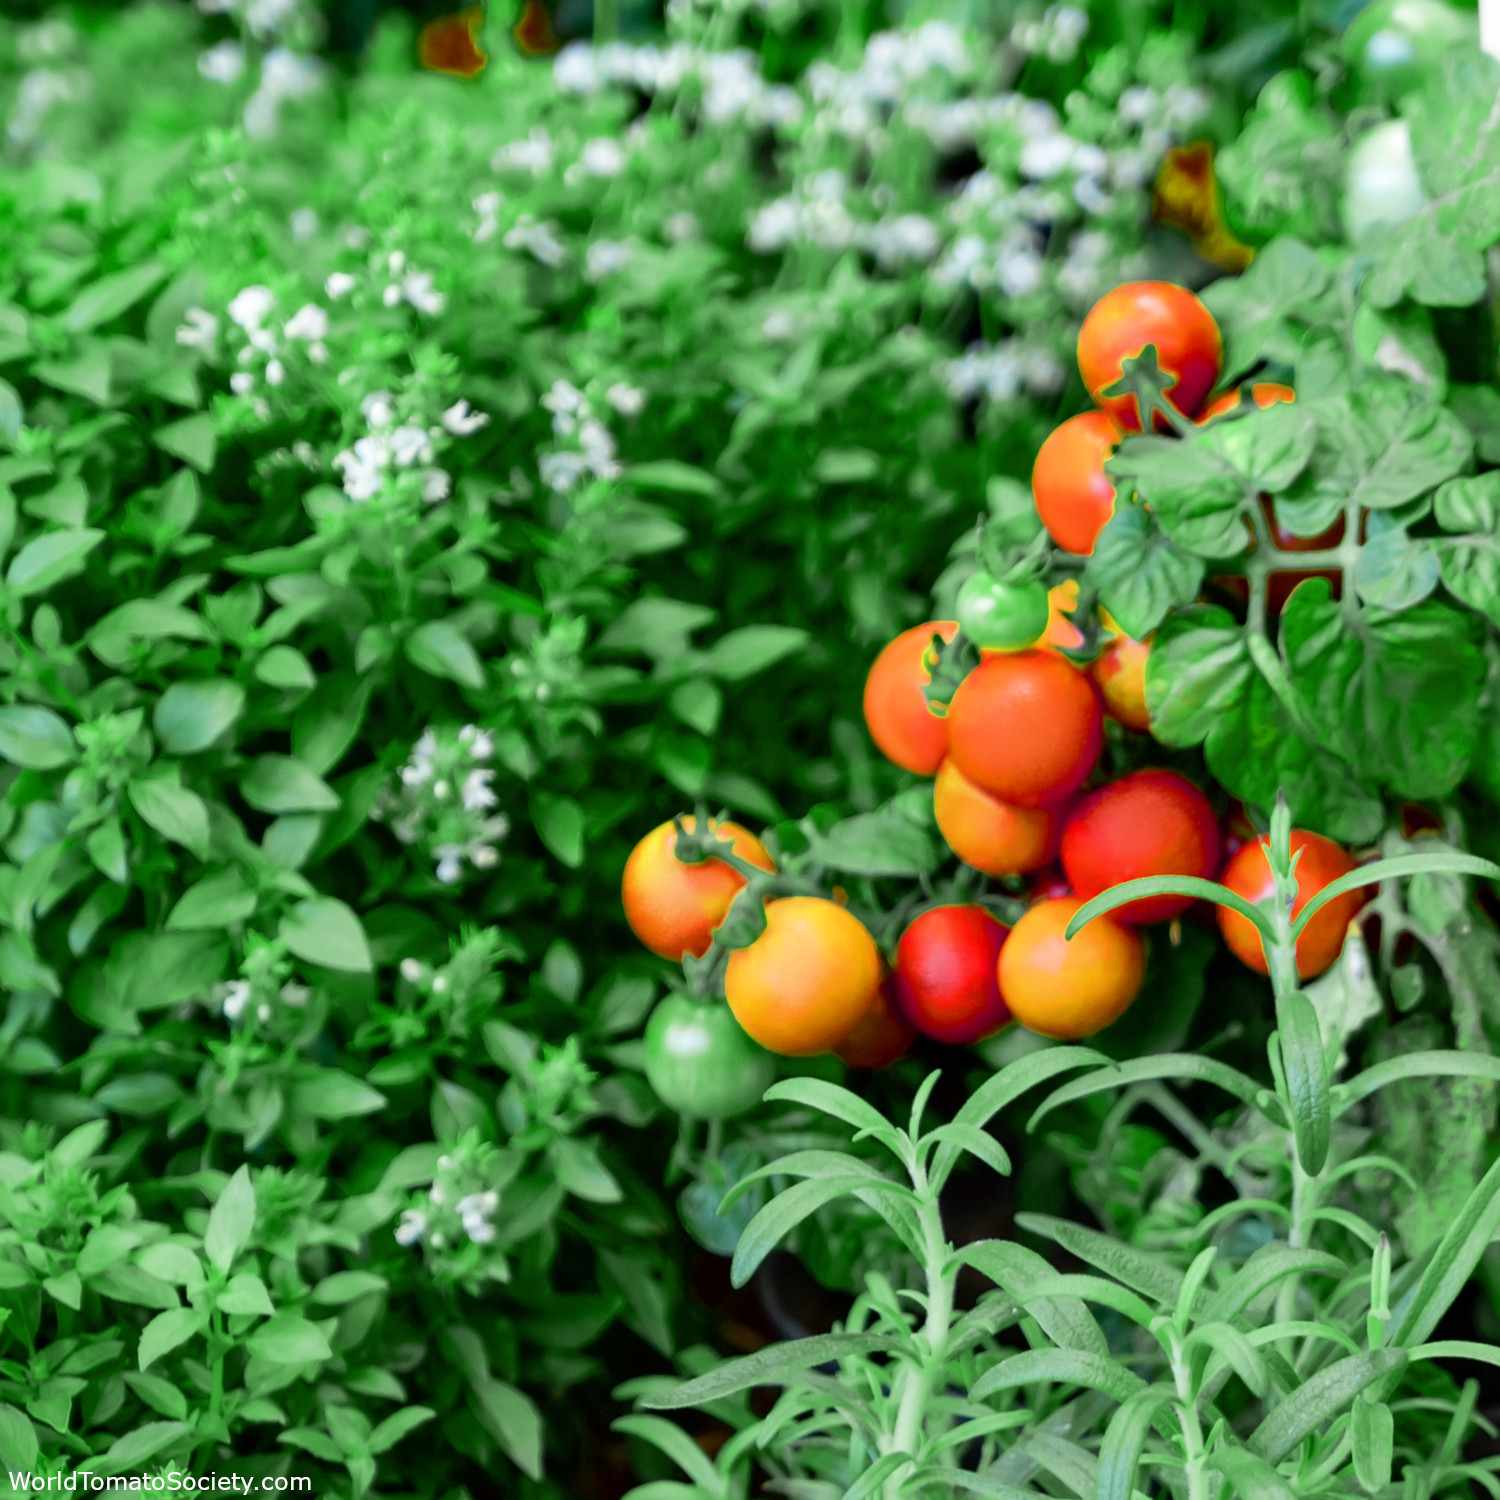 ARTICLE Ten Expert Tips for Raised Garden Beds and Planters Edit